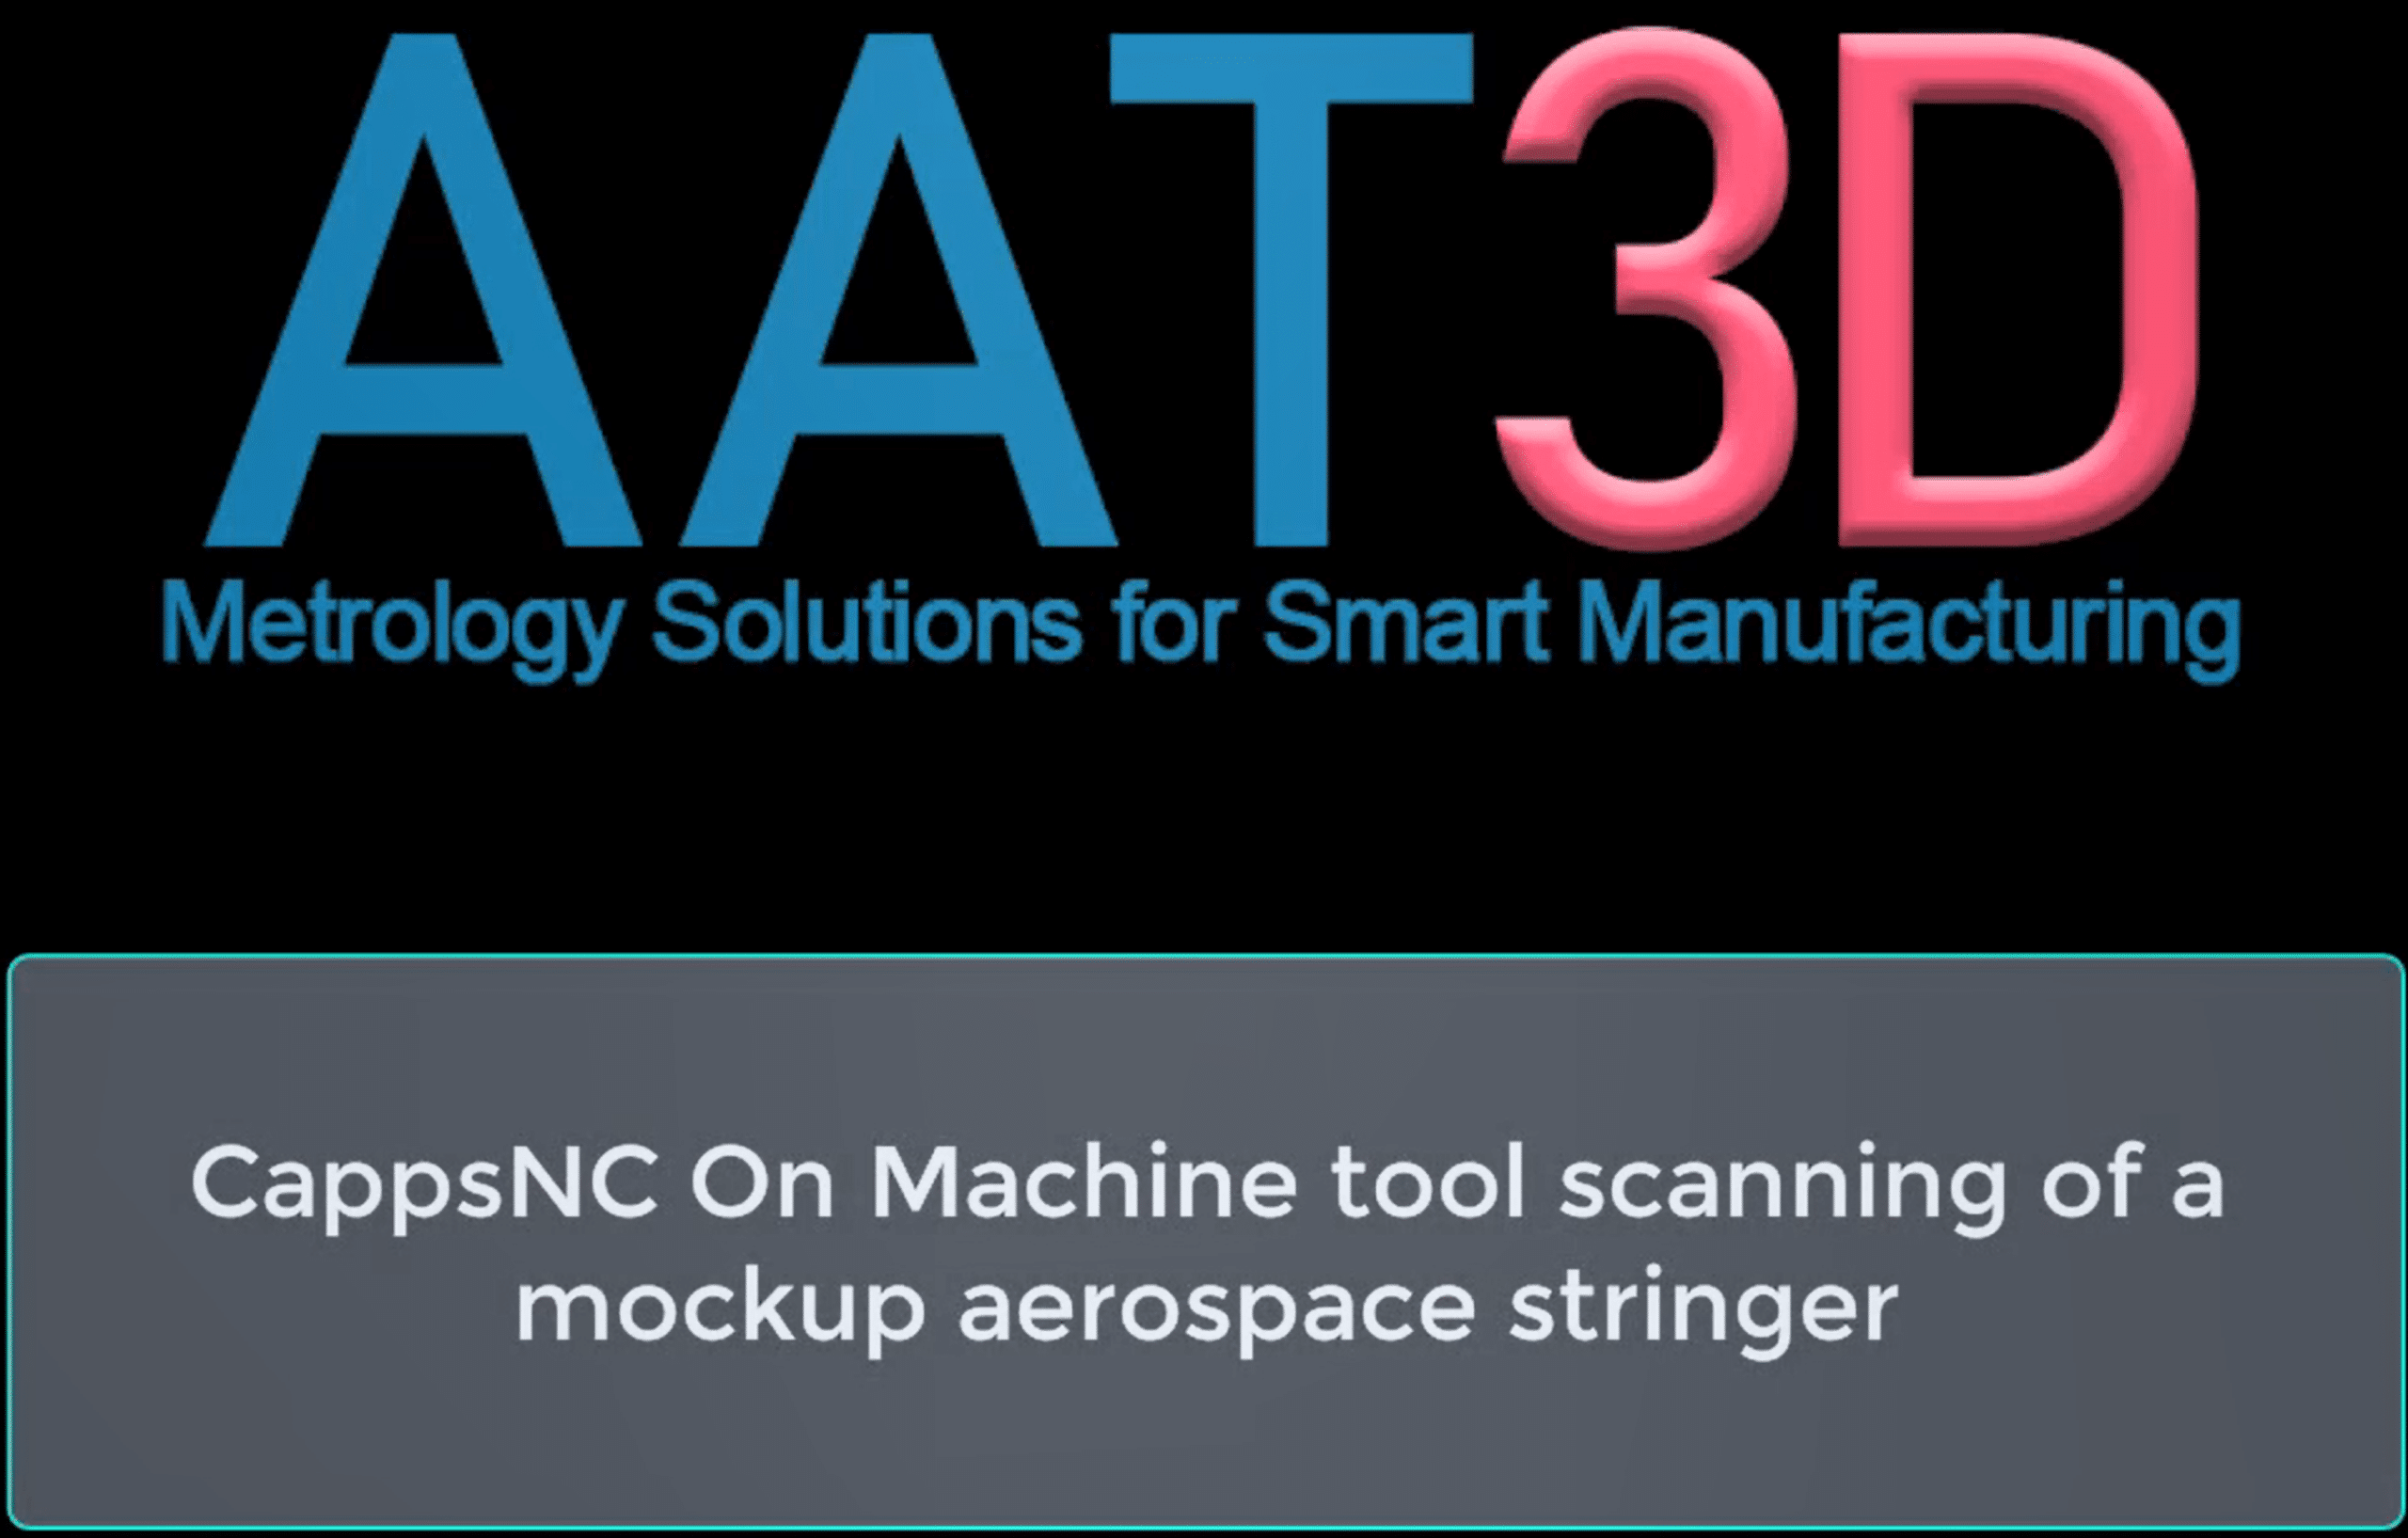 AAT Capps video showing on-machine probing cycle with a blue light laser scanner